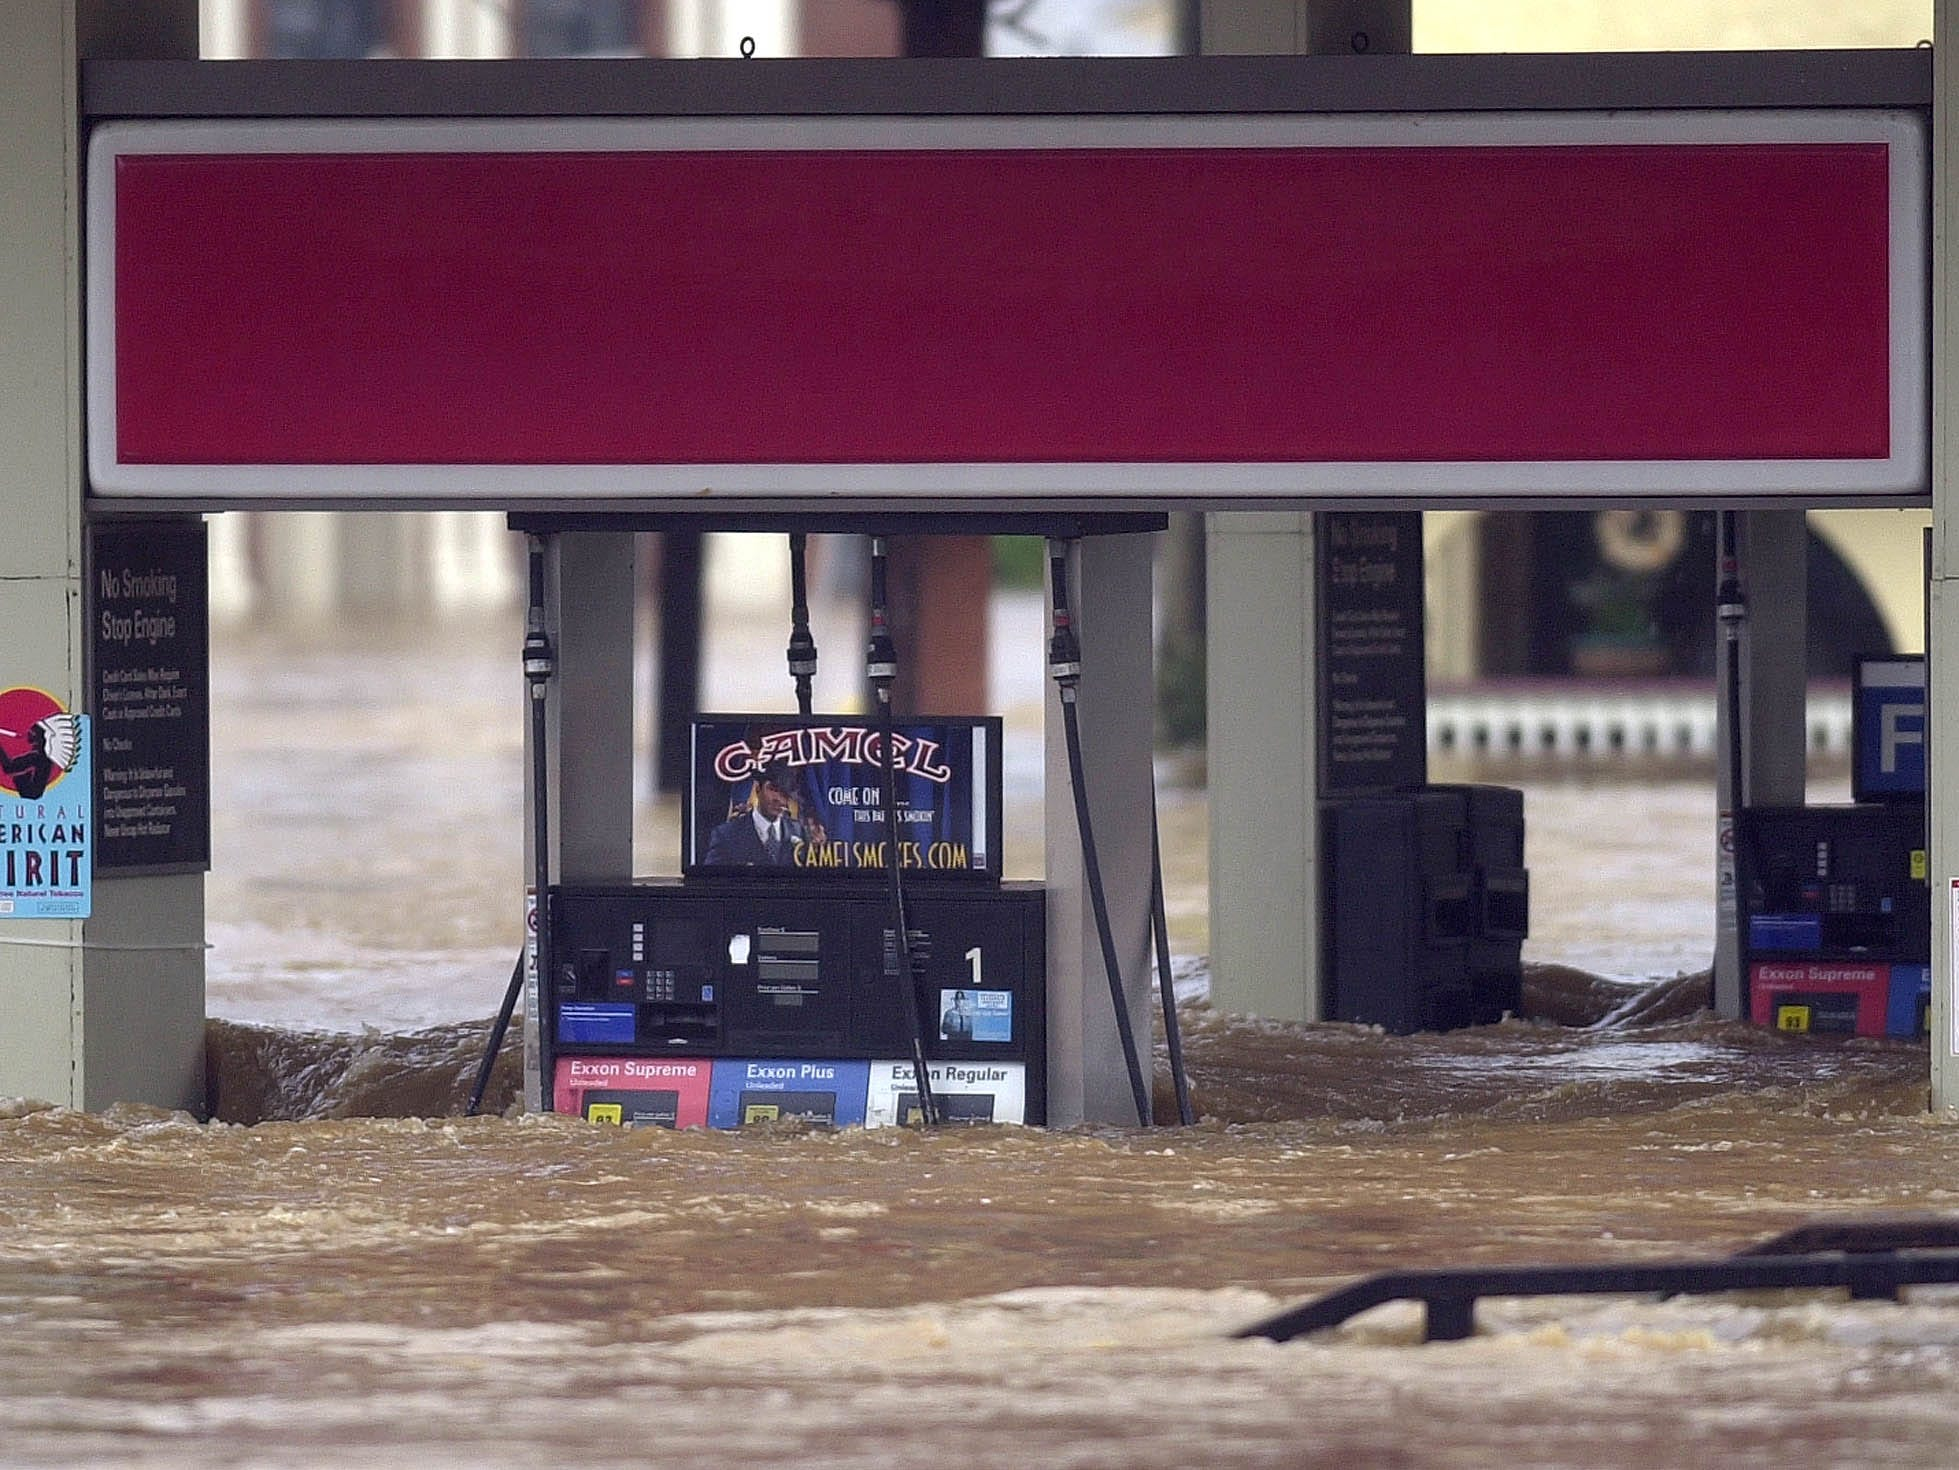 Floodwaters envelop a gas station in the Biltmore Village section of Asheville on Sept. 8, 2004. More than10 inches of rain, remnants of Hurricane Frances, caused massive flooding throughout Western North Carolina.